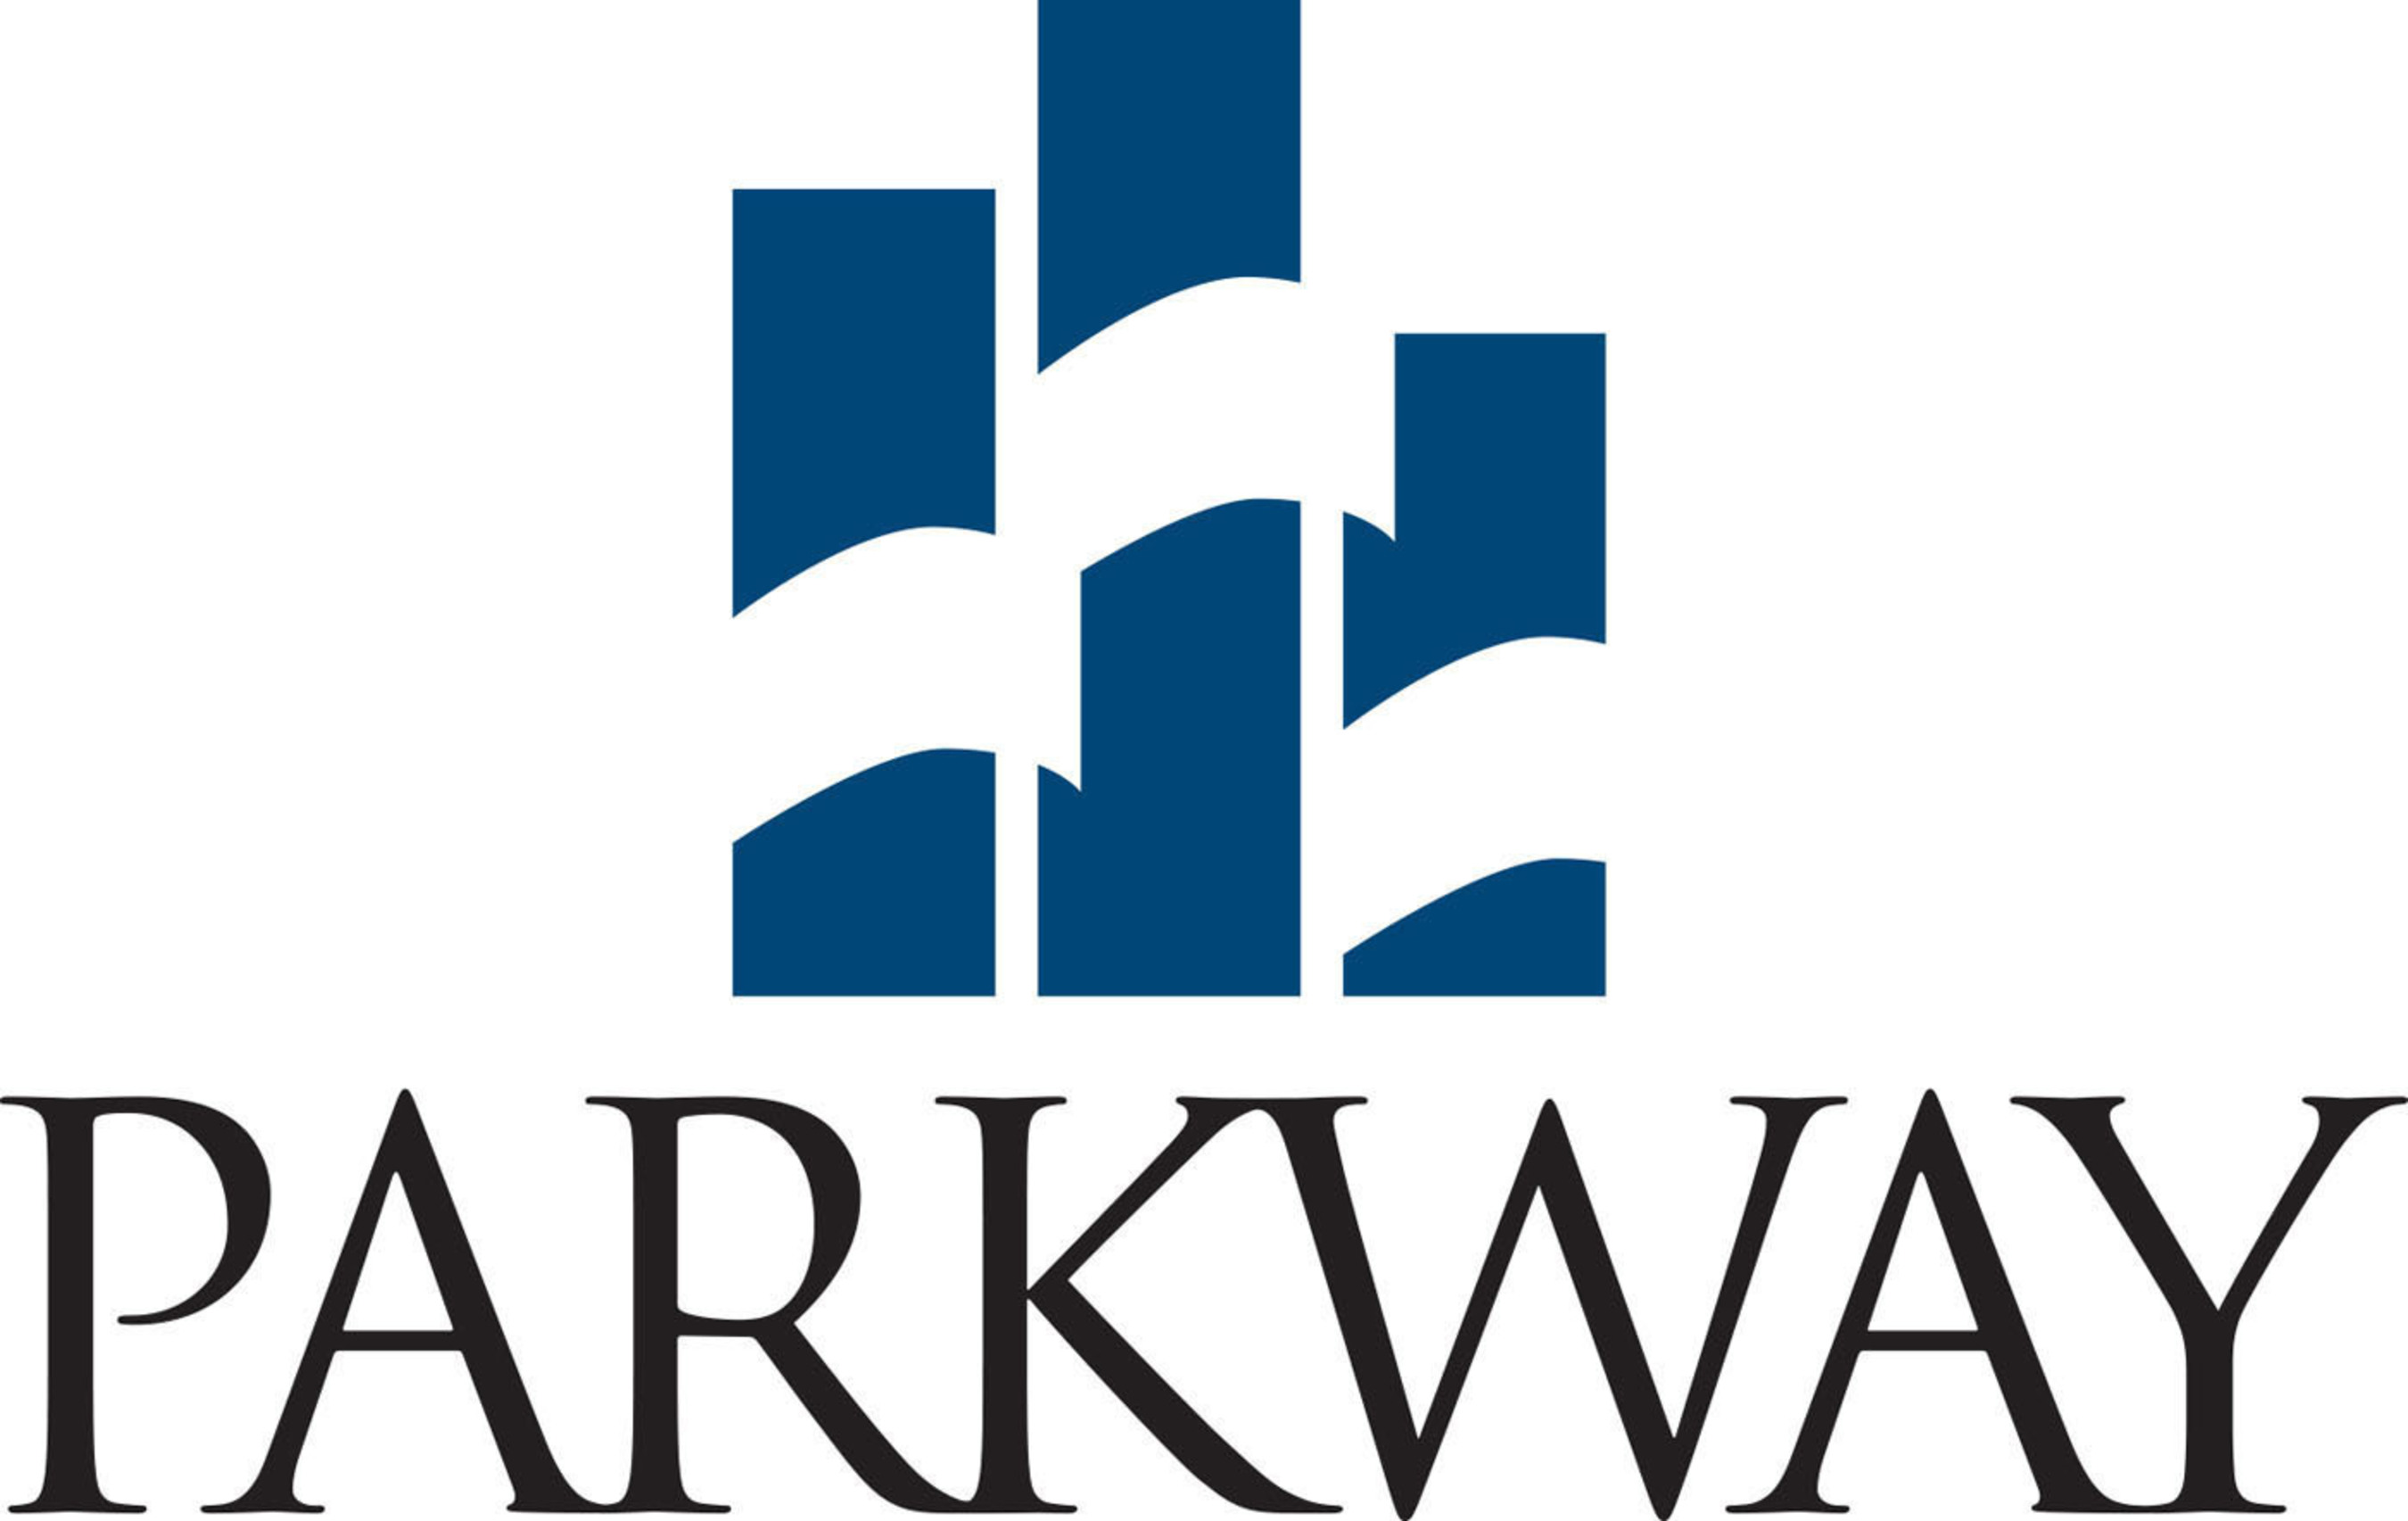 Parkway Announces Annual Stockholders Meeting Date